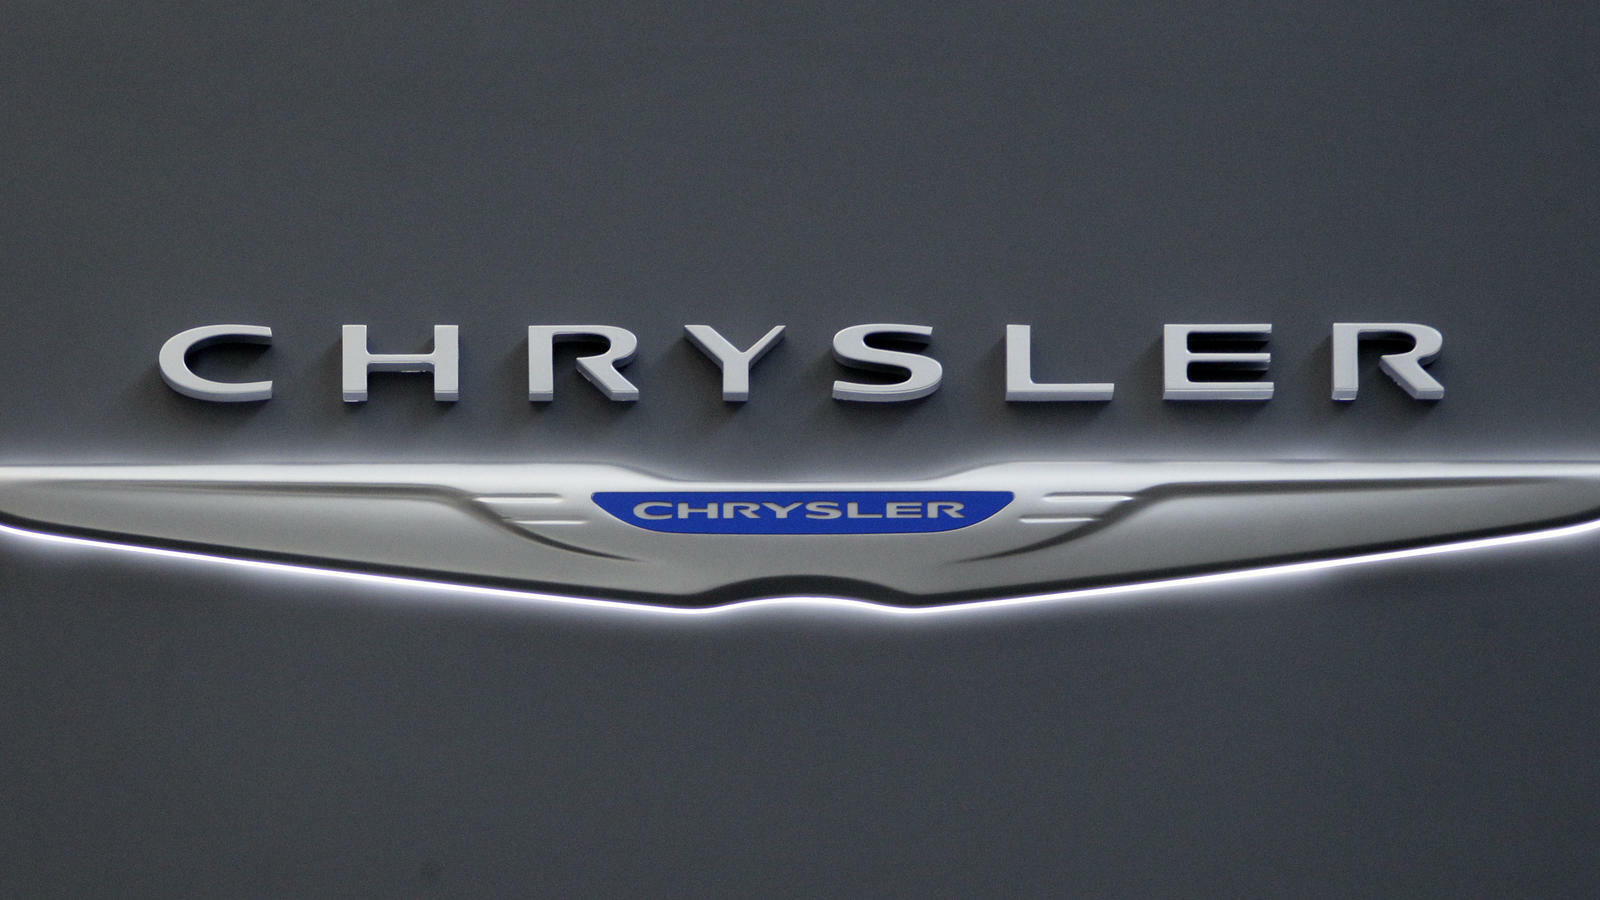 Chrysler logo on the Chrysler exhibit Quelle: dapd